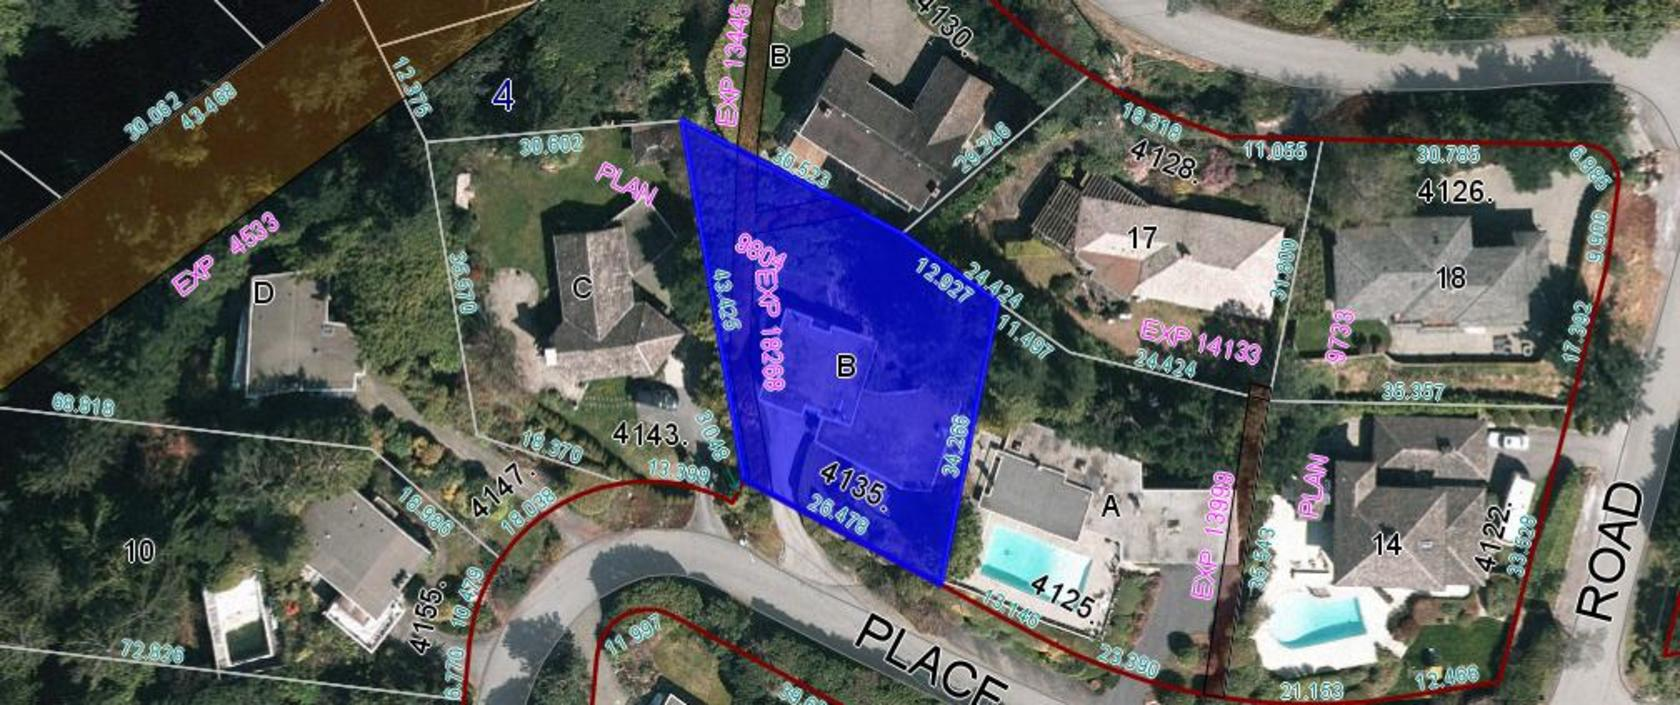 GIS Map at 4135 Burkehill Place, Bayridge, West Vancouver